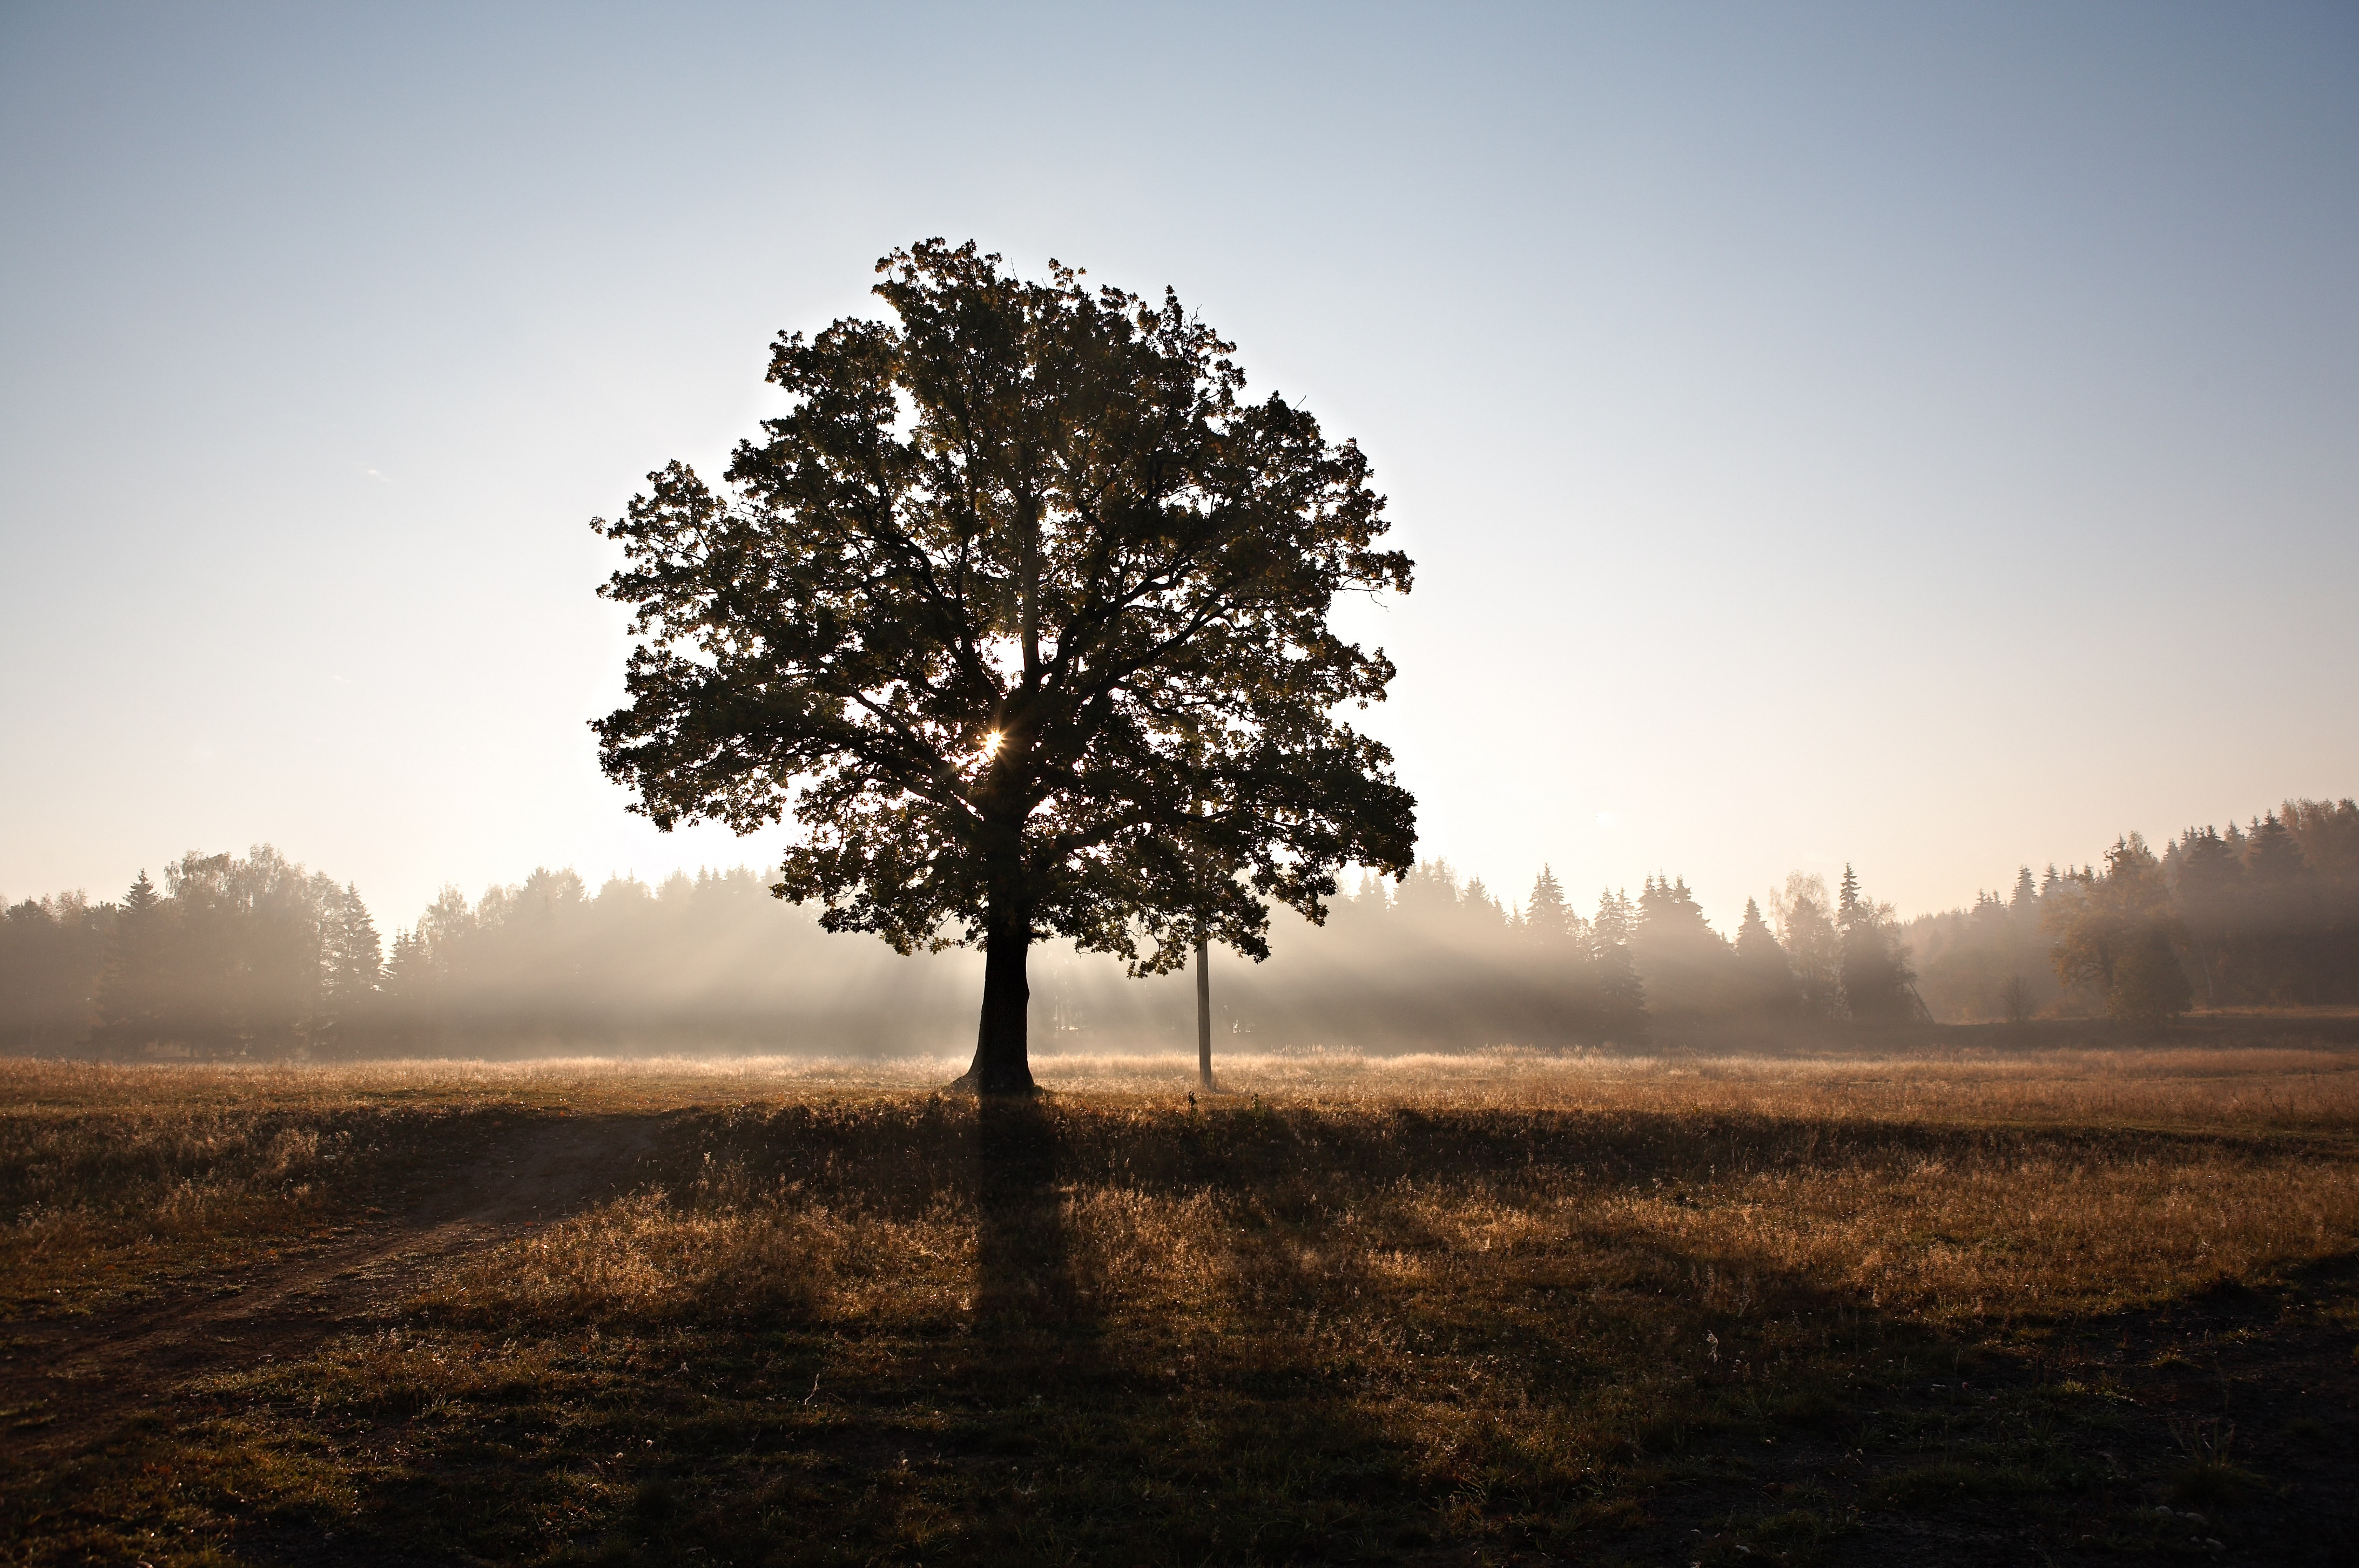 A single tree in the middle of a field during sunrise